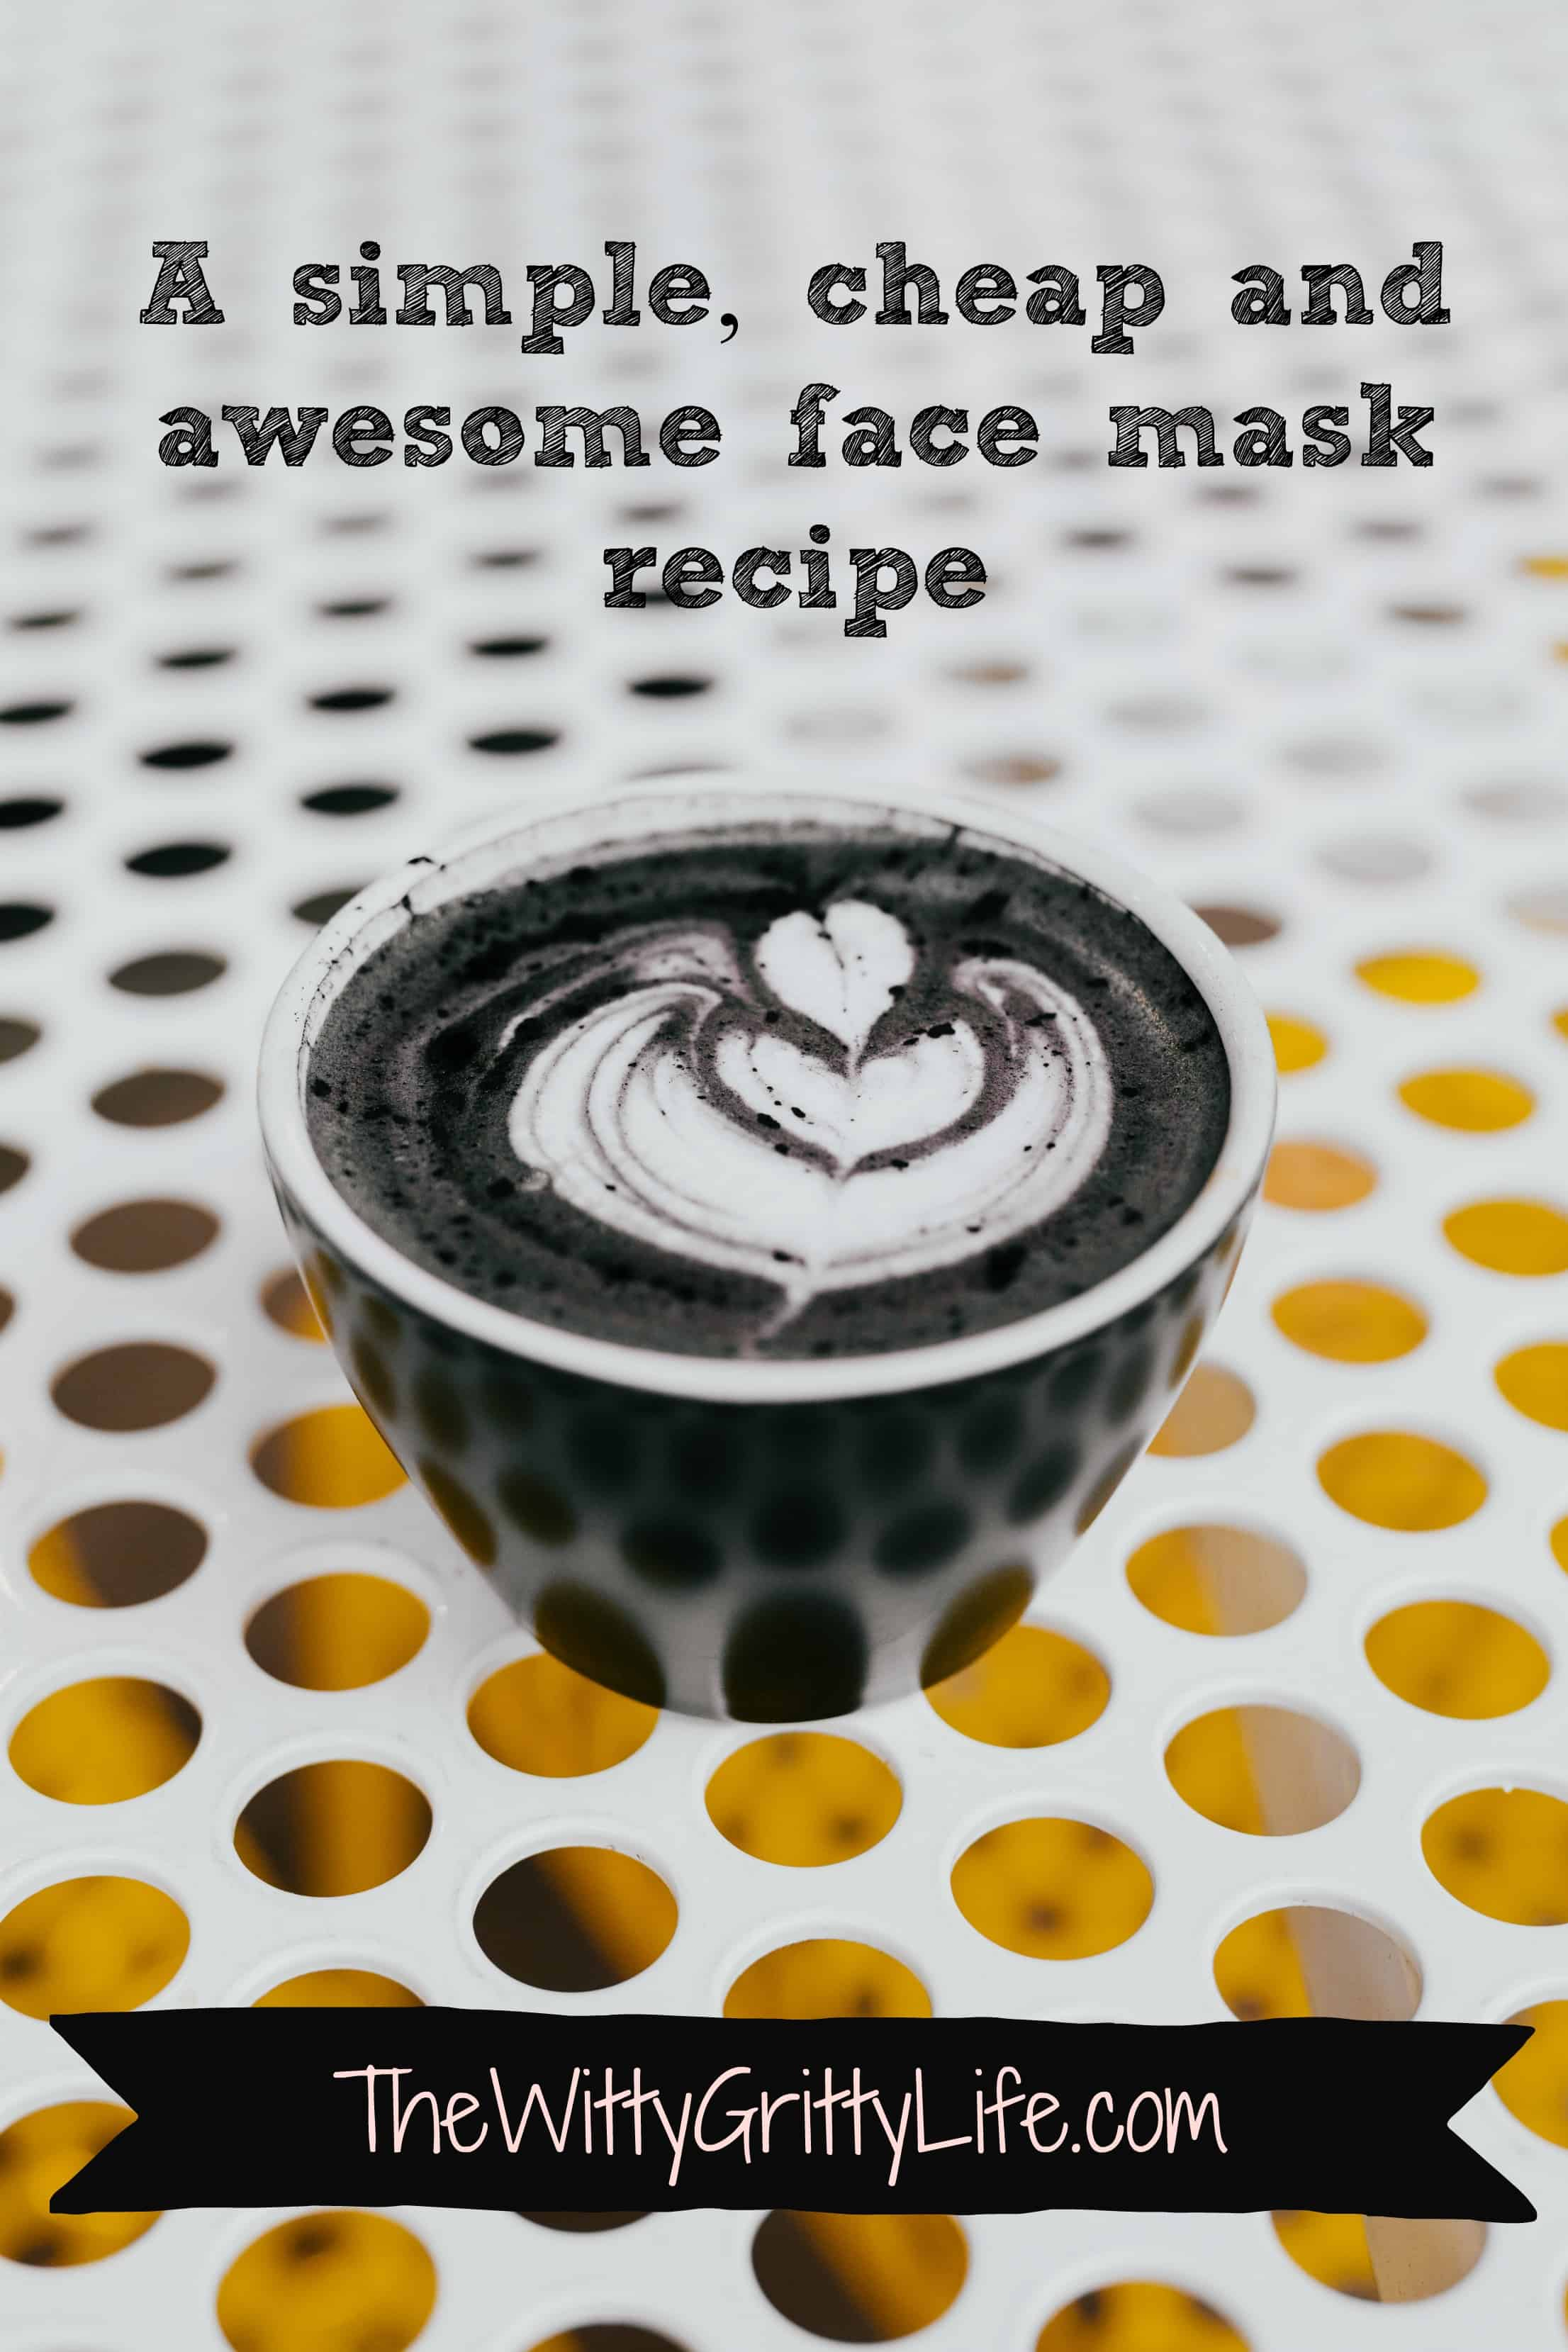 A simple recipe that includes two powerhouse ingredients into one amazing face mask that detoxifies, nourishes and and exfoliates all at the same time! Better still, it costs mere pennies and couldn't be easier to make!